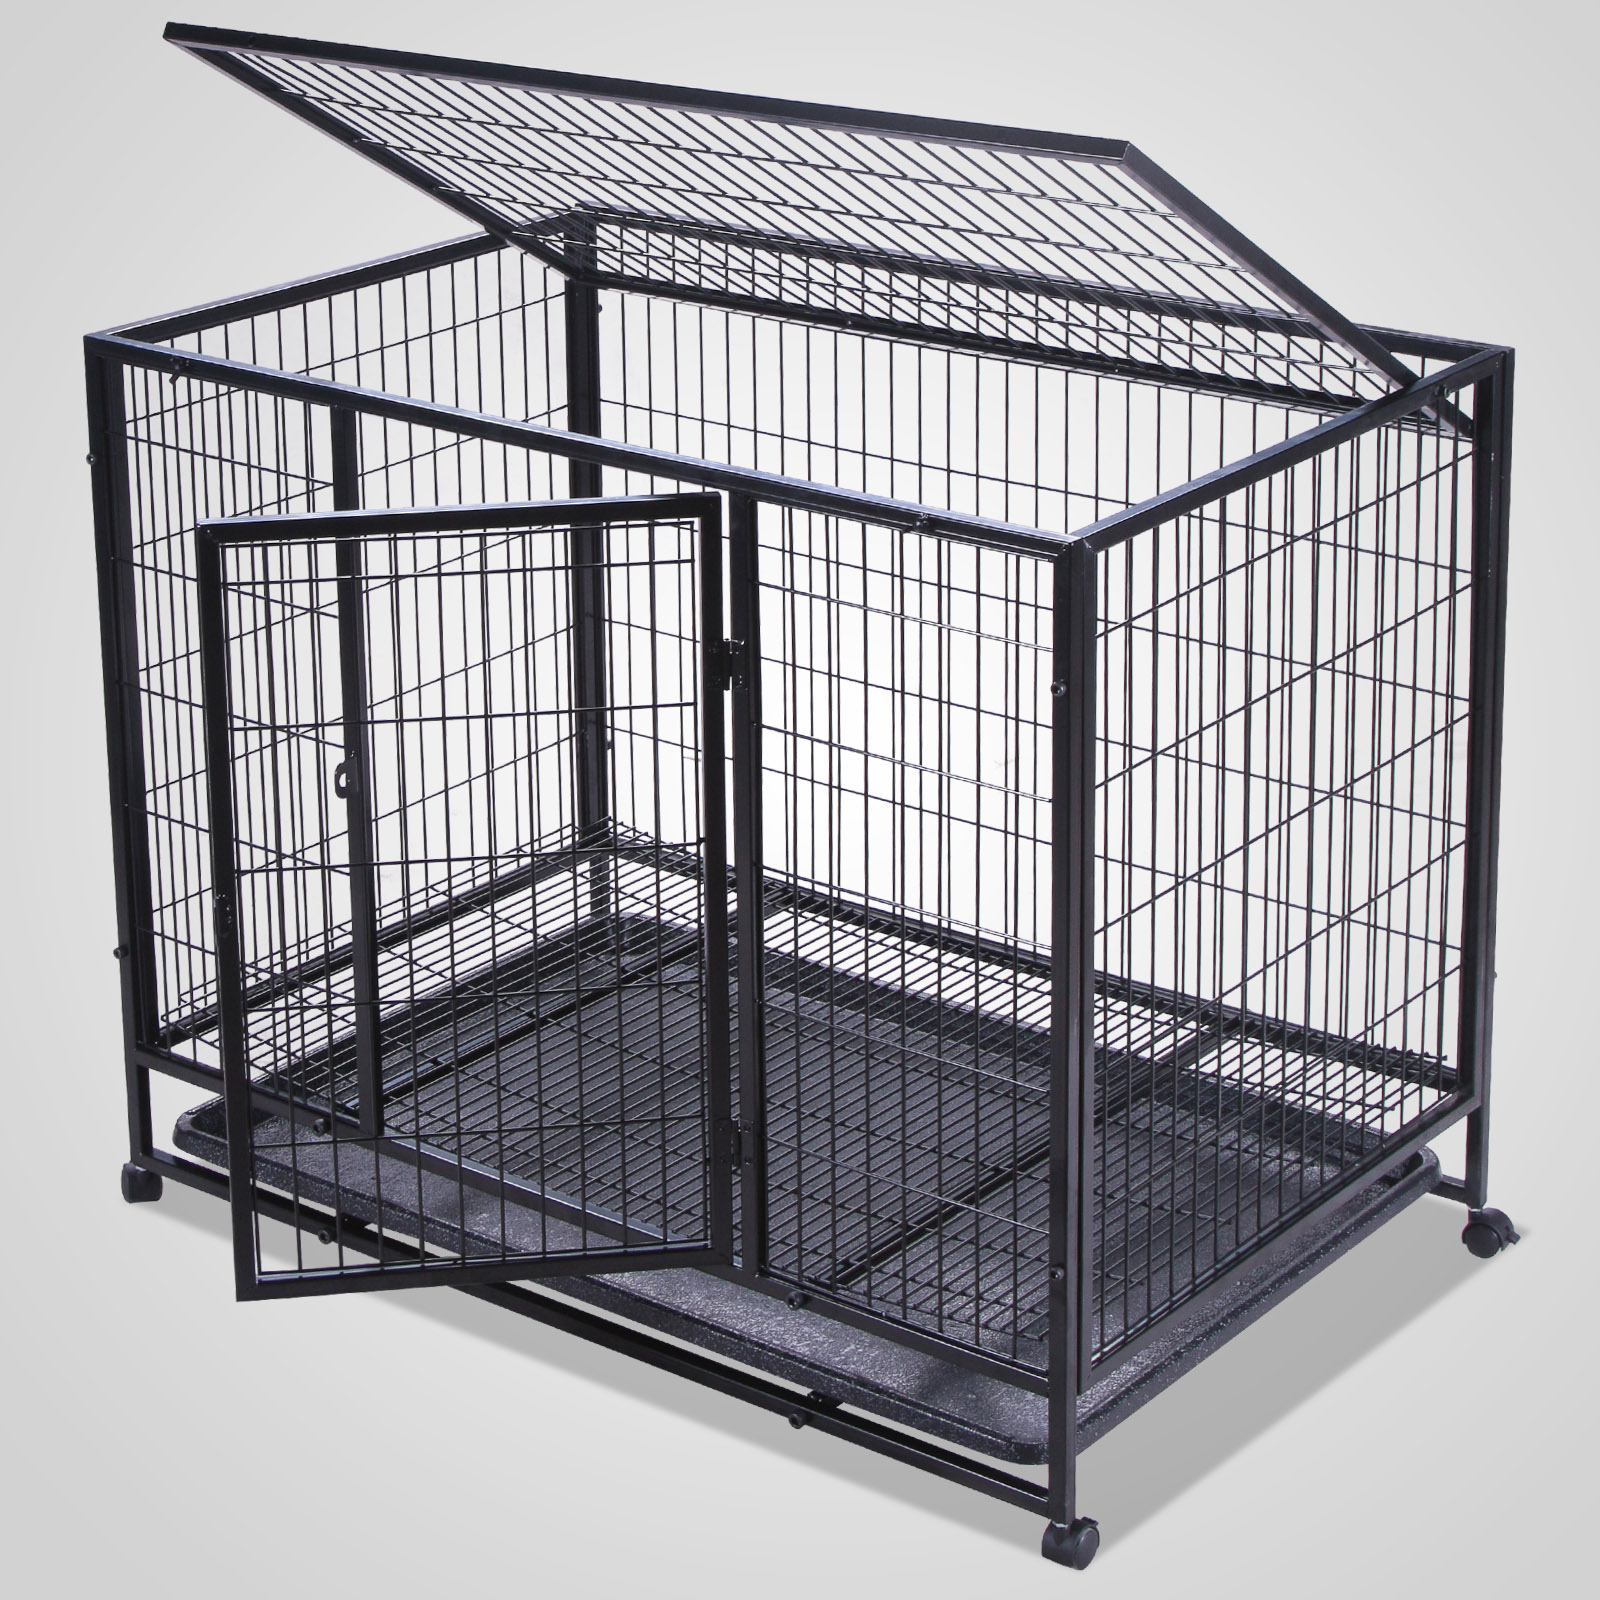 Black Dog Cage Crate Suitcase Folding Animal Kennel Pet